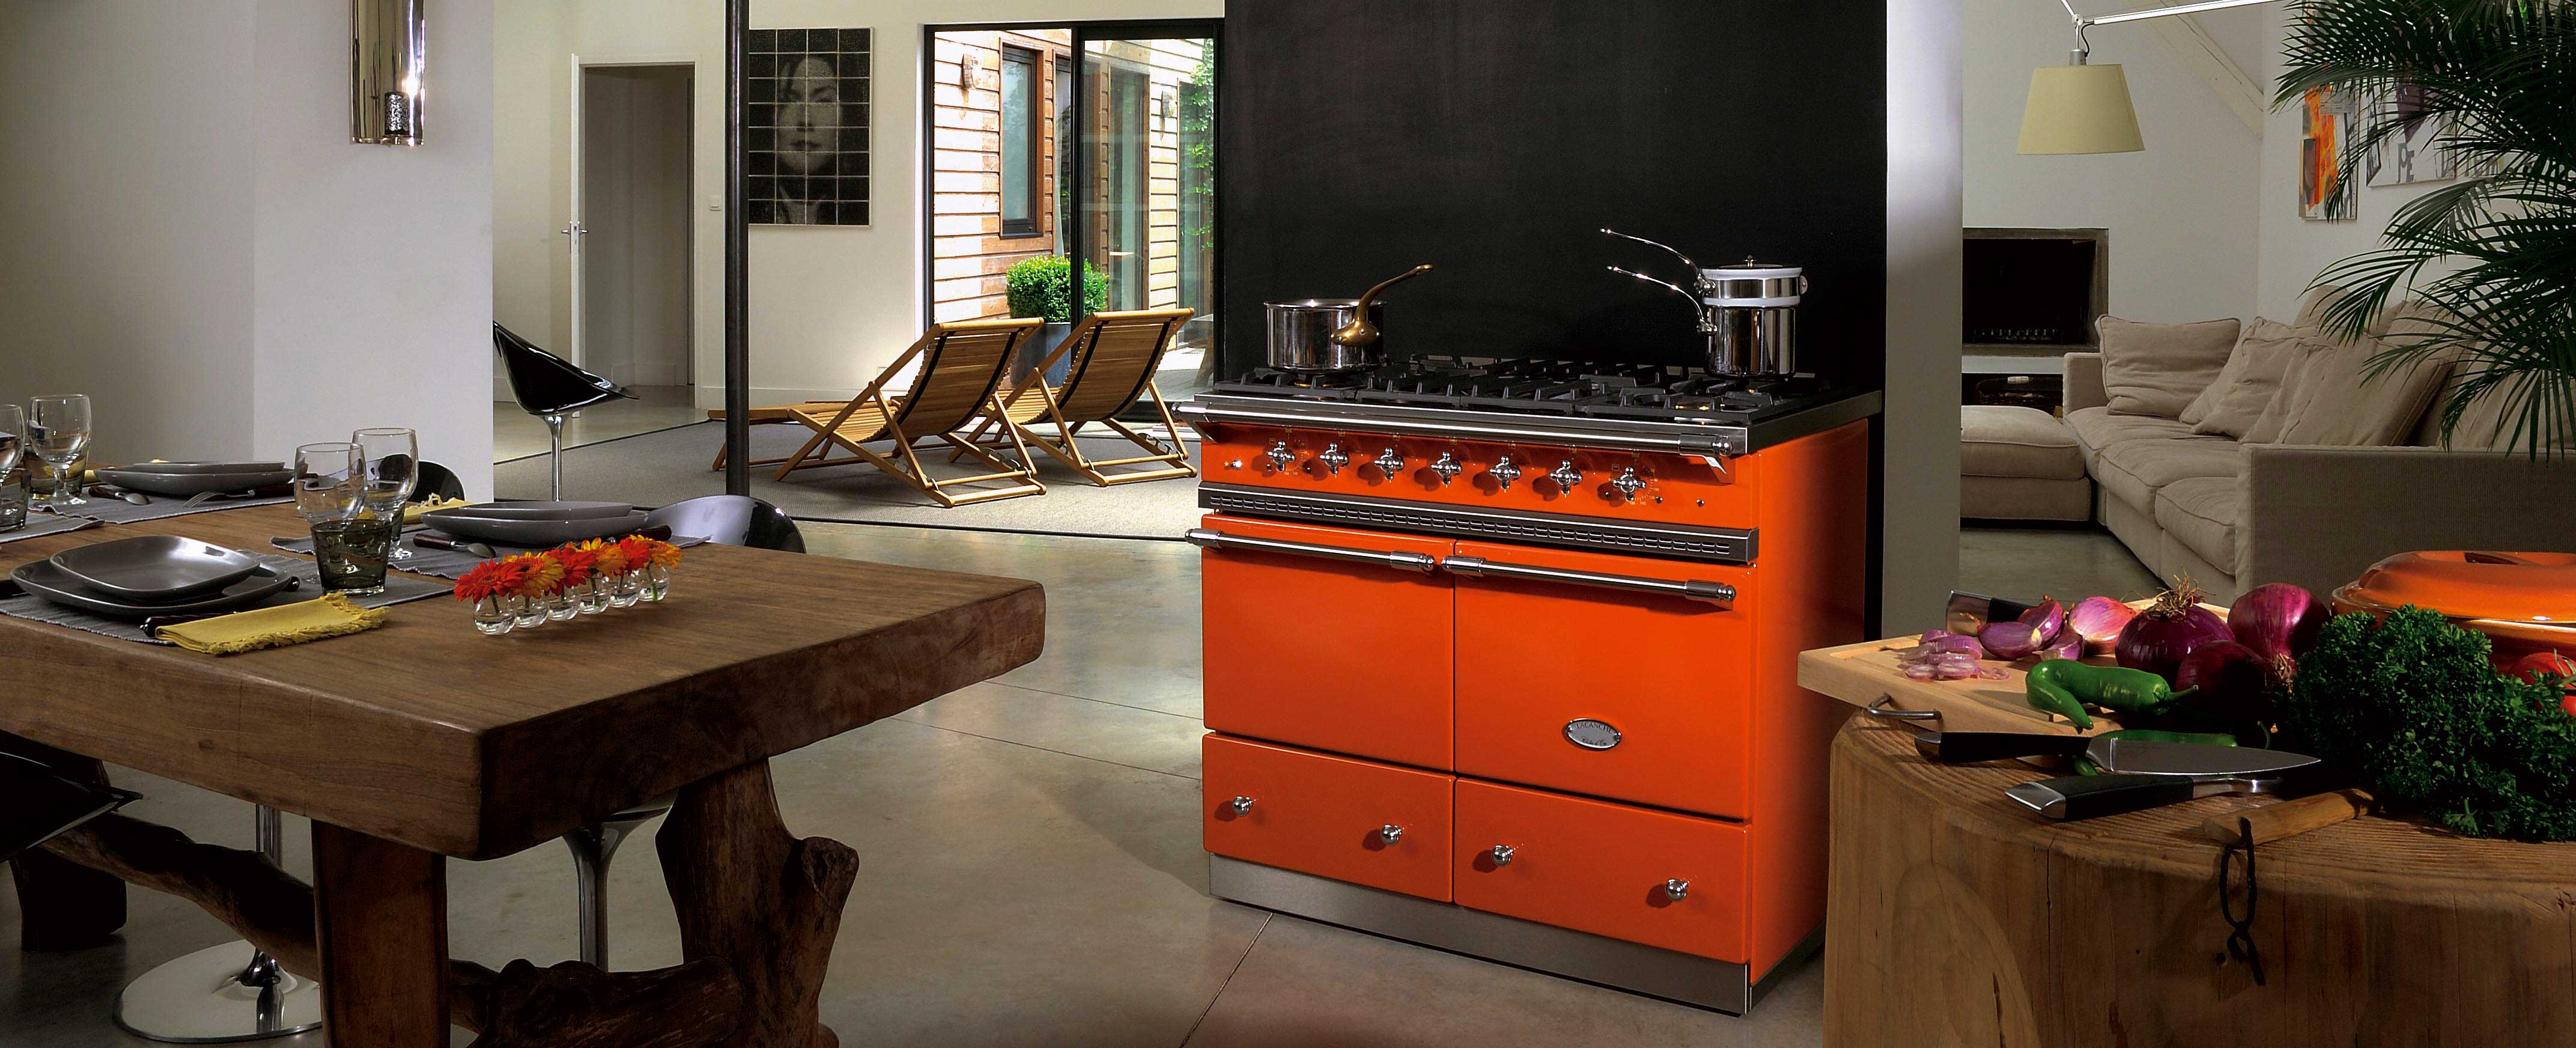 Everhot Cast Iron Range Cooker